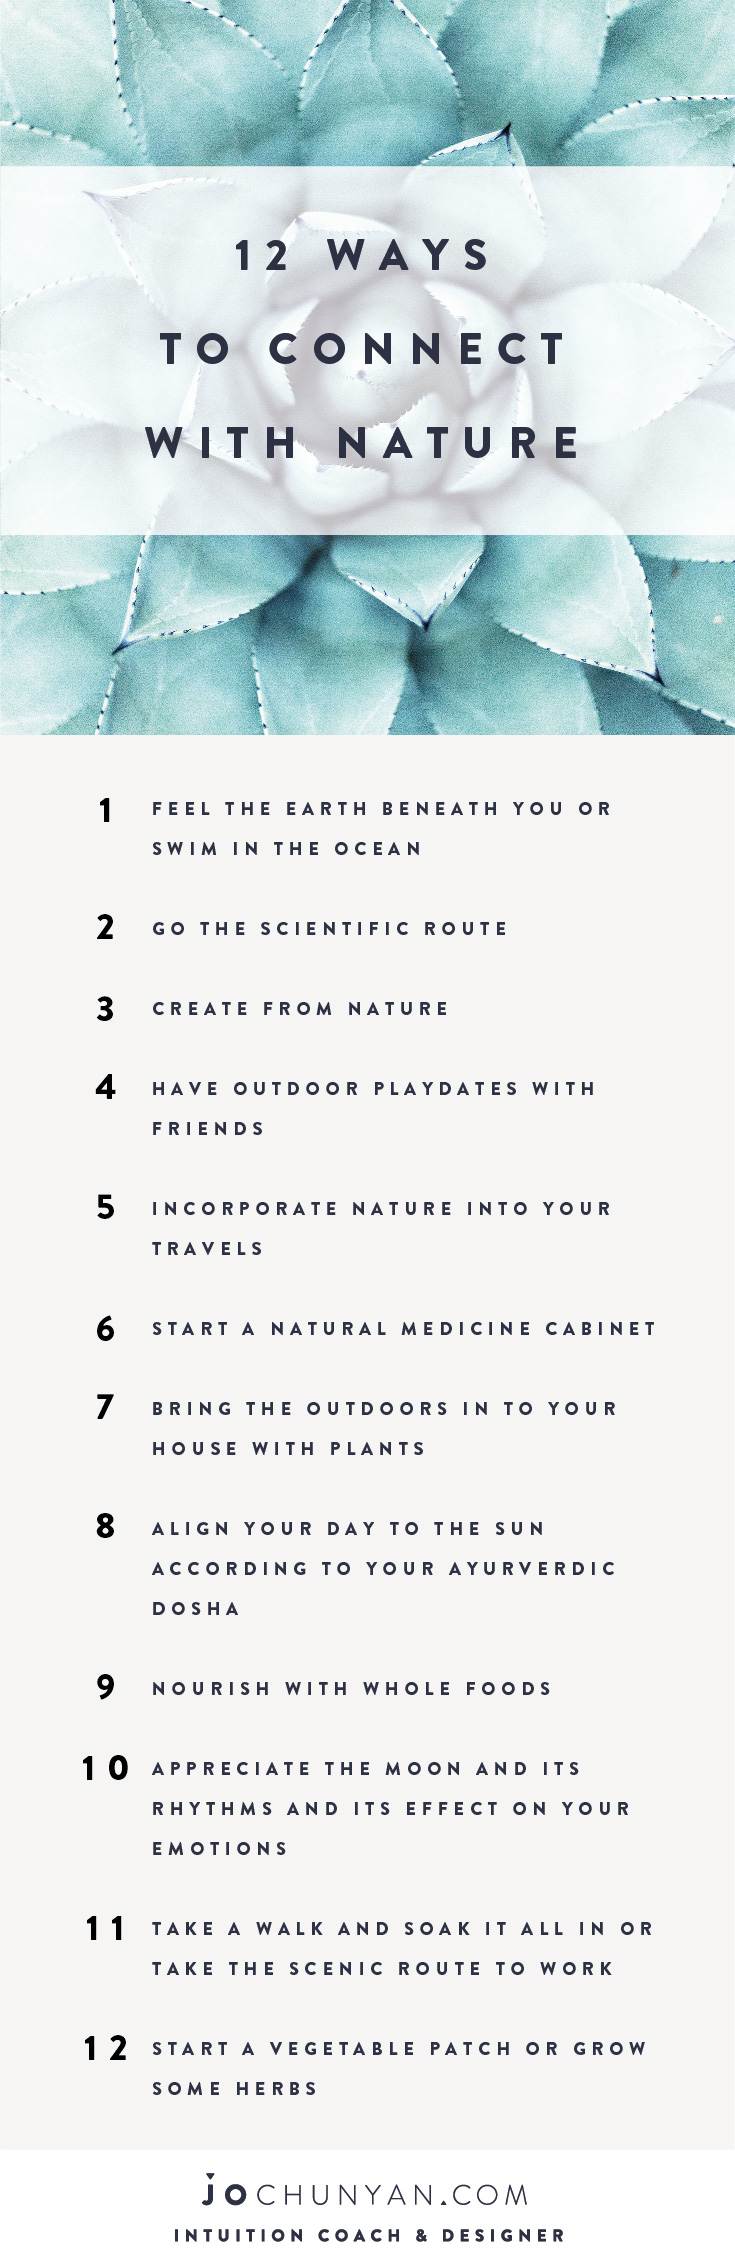 Jo-ChunYan - 12 Ways To Connect With Nature 2